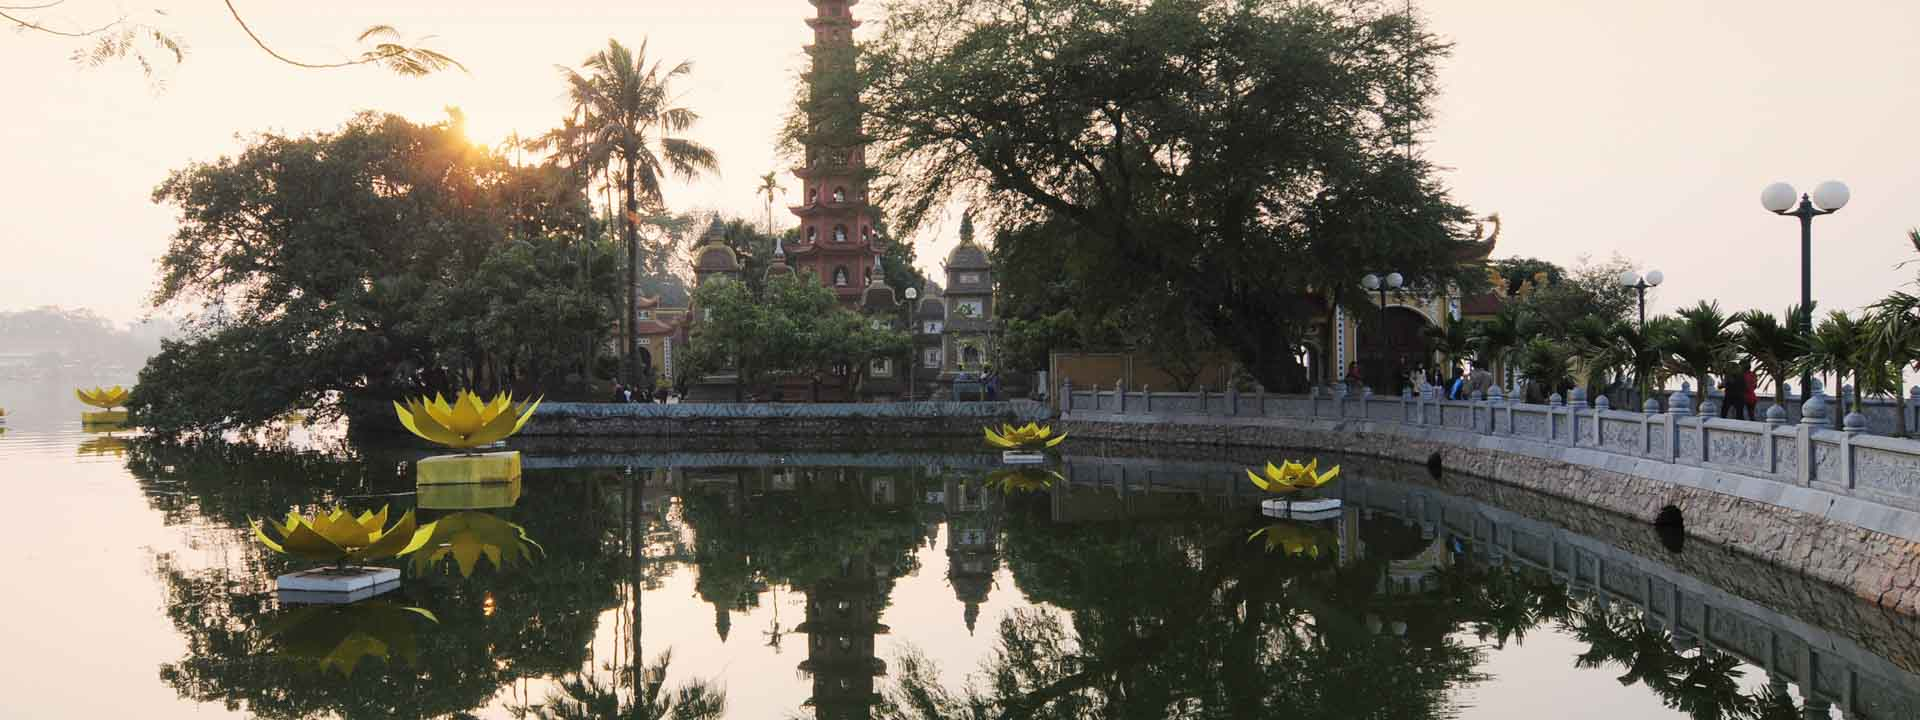 Discover Hanoi and Surroundings in Style 5 days